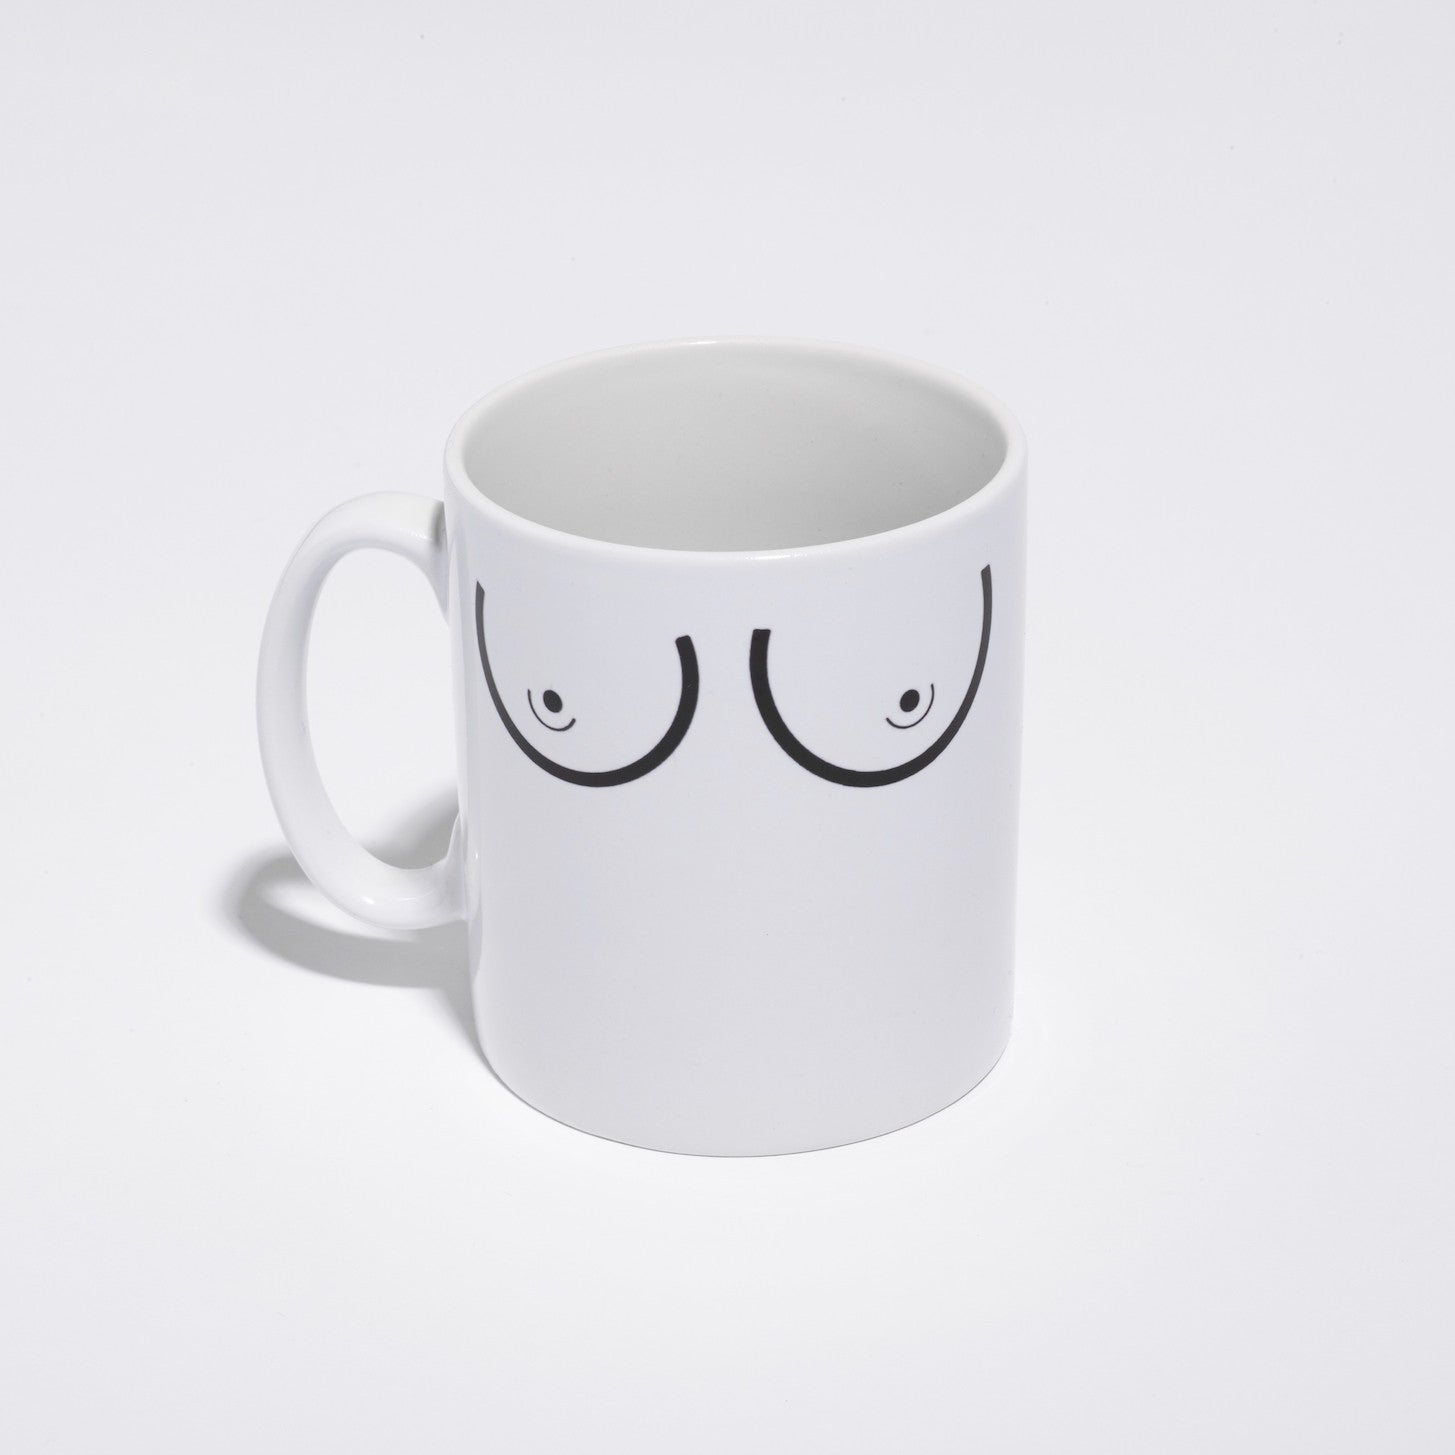 bOOb Appreciation Mug by Mère Soeur. Mere Soeur is a lifestyle brand dedicated to celebrating sisterhood and empowering mums.